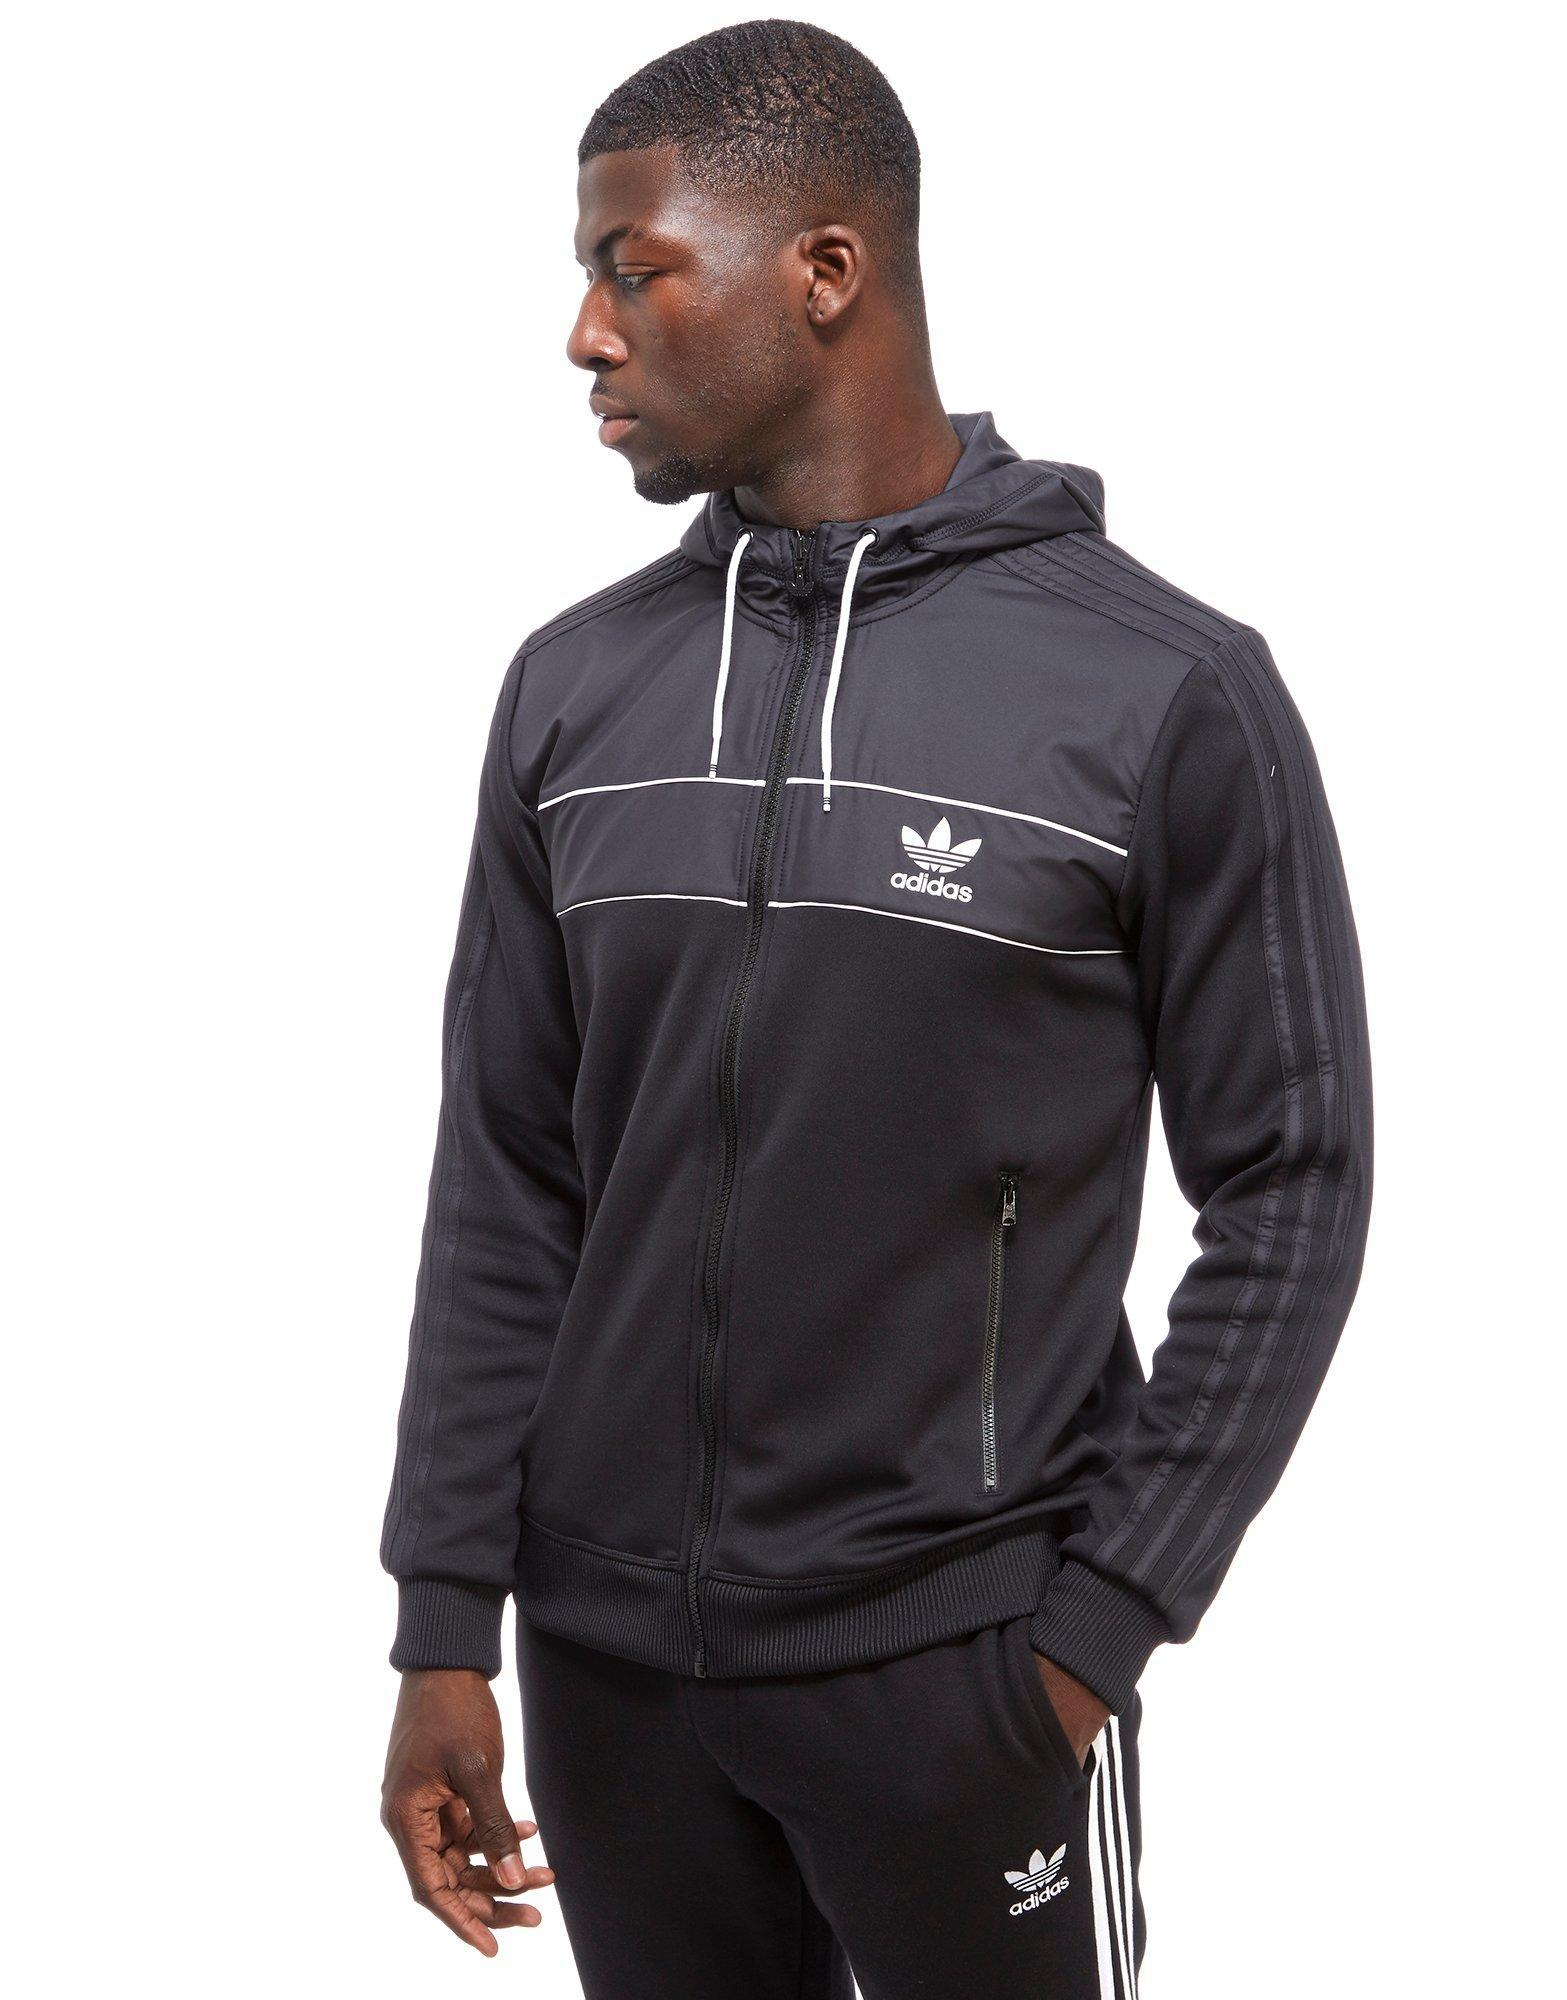 Lyst Adidas Originals Country Full en Zip Hoody en Adidas Originals Negro para Hombres 2778394 - rigevidogenerati.website